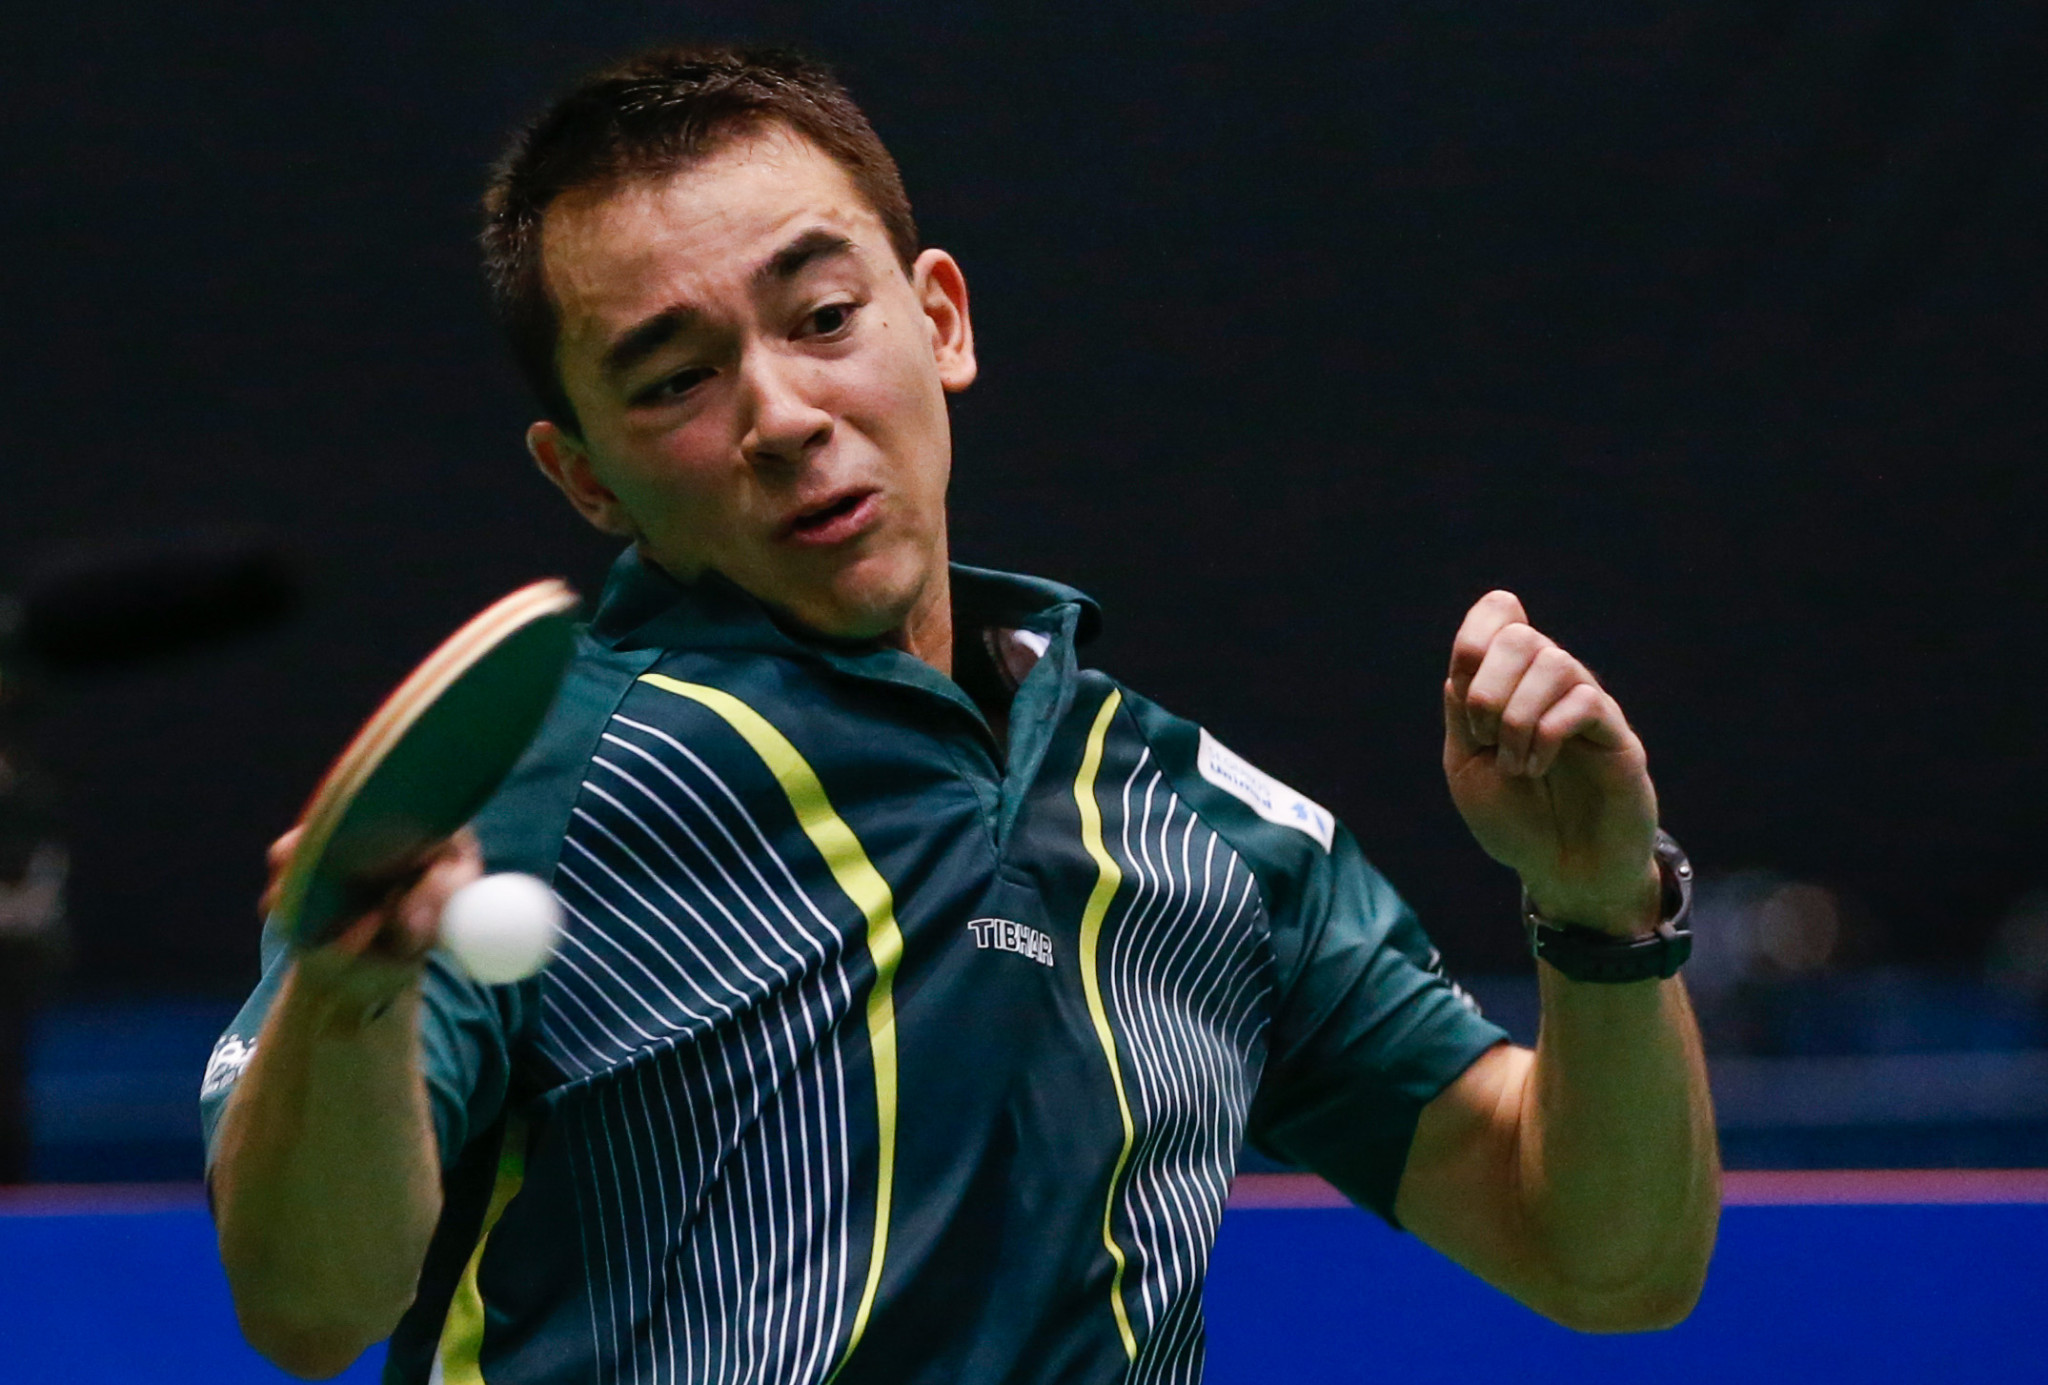 Hugo Calderano will head the men's singles field in Asuncion ©ITTF